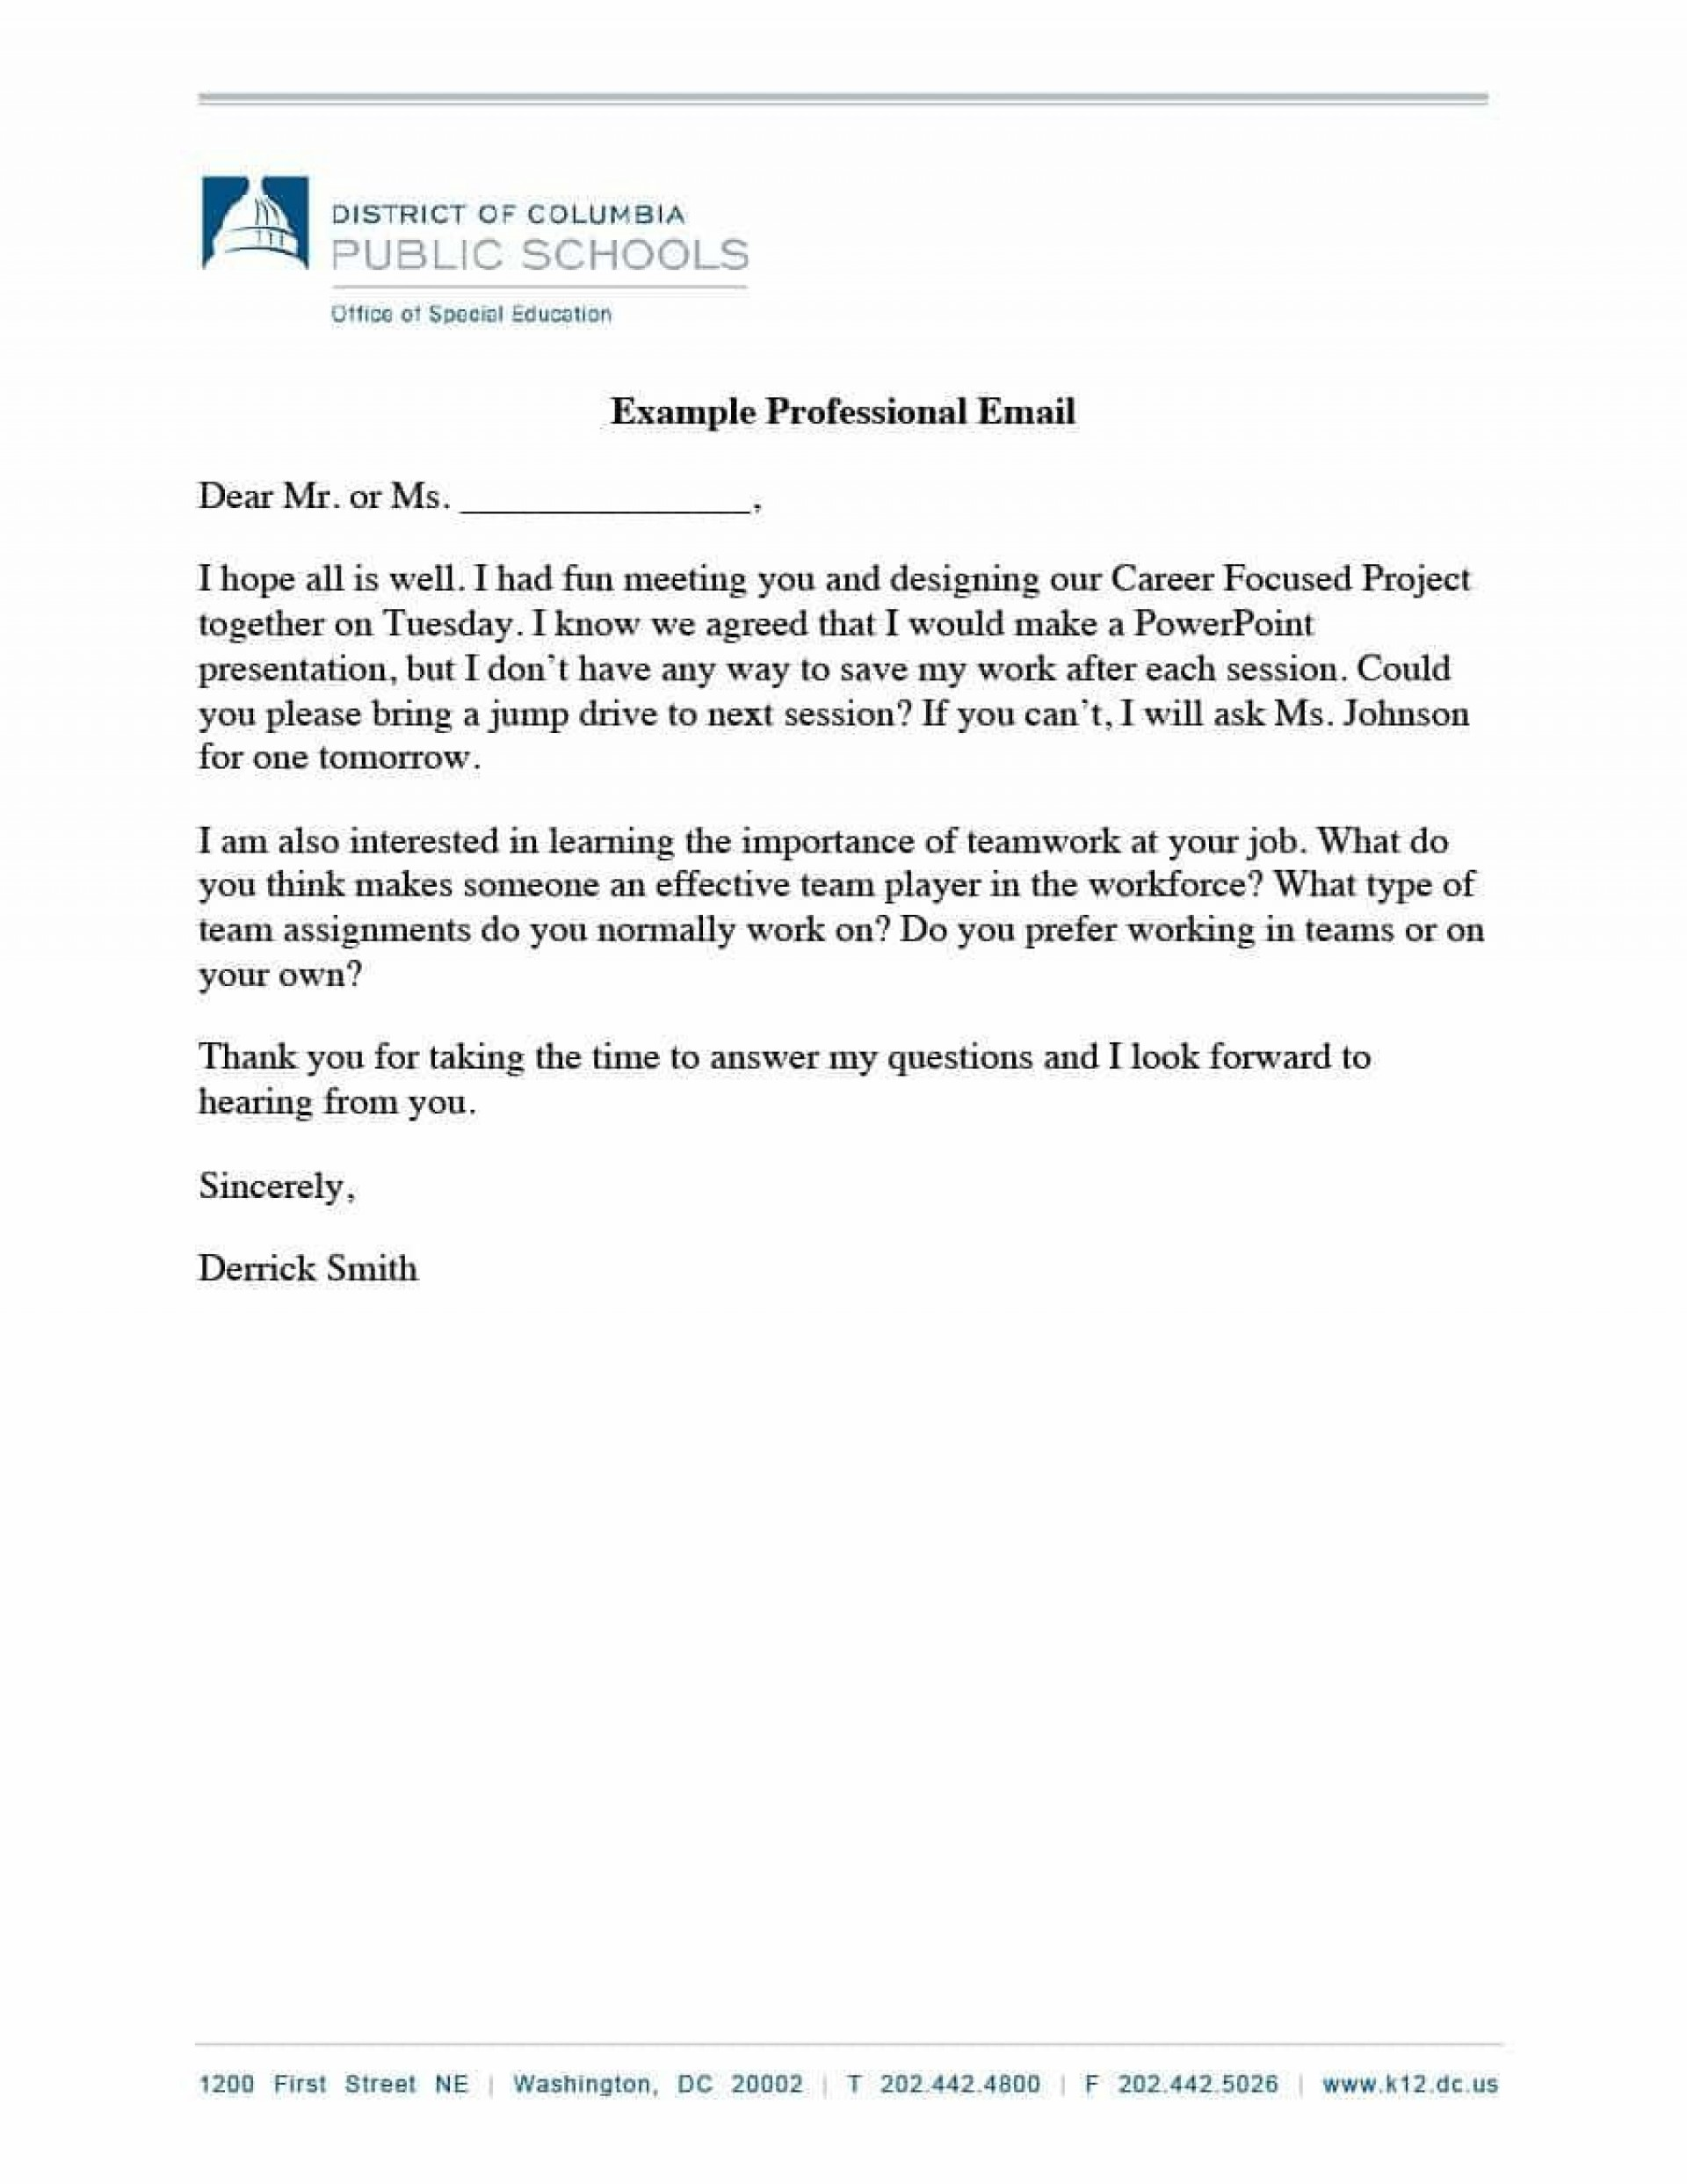 003 Outstanding Professional E Mail Template Design  Templates Email For Job Application Busines Signature Example Customer Service1920